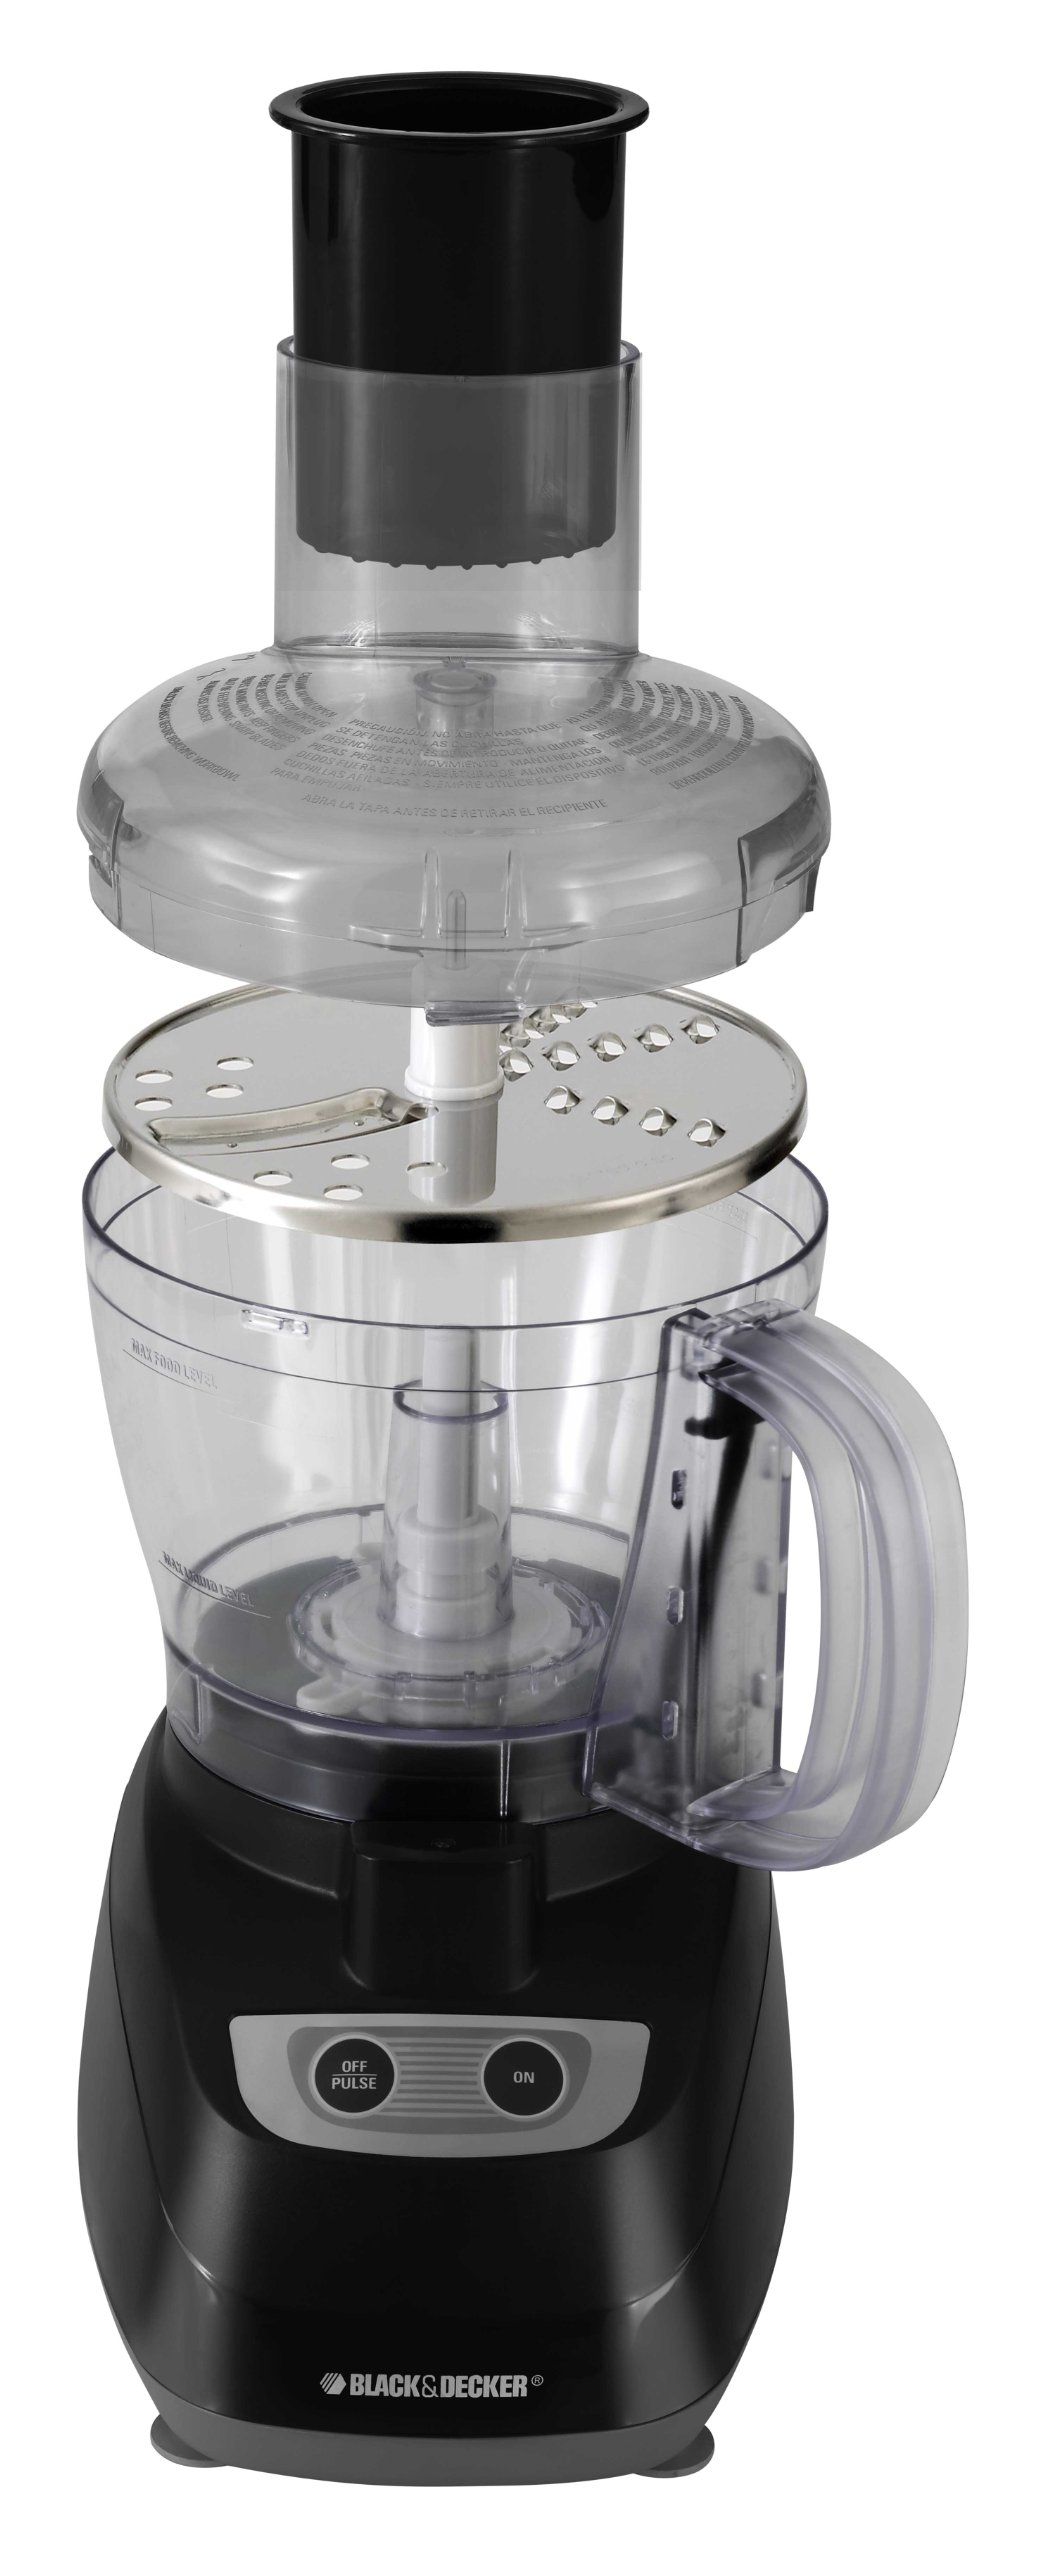 black and decker 10 cup food processor instructions